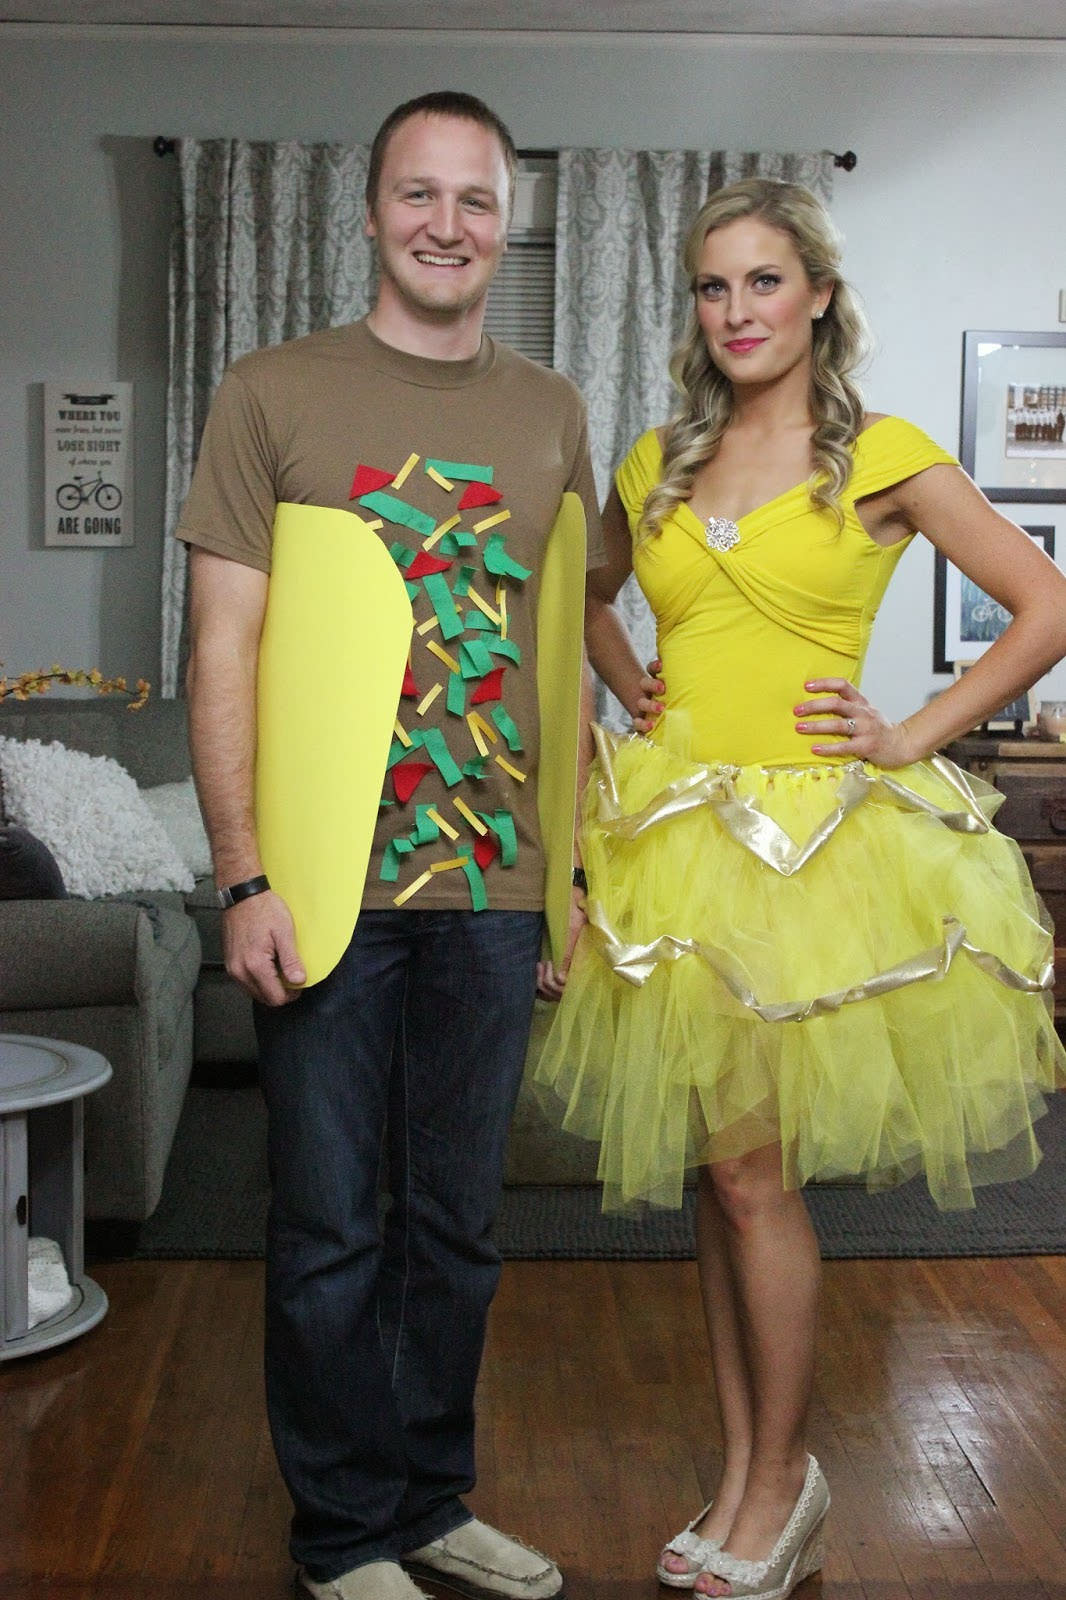 15 diy couples and family halloween costumes onecreativemommy 15 awesome diy halloween costumes for couples and families onecreativemommy find these solutioingenieria Images